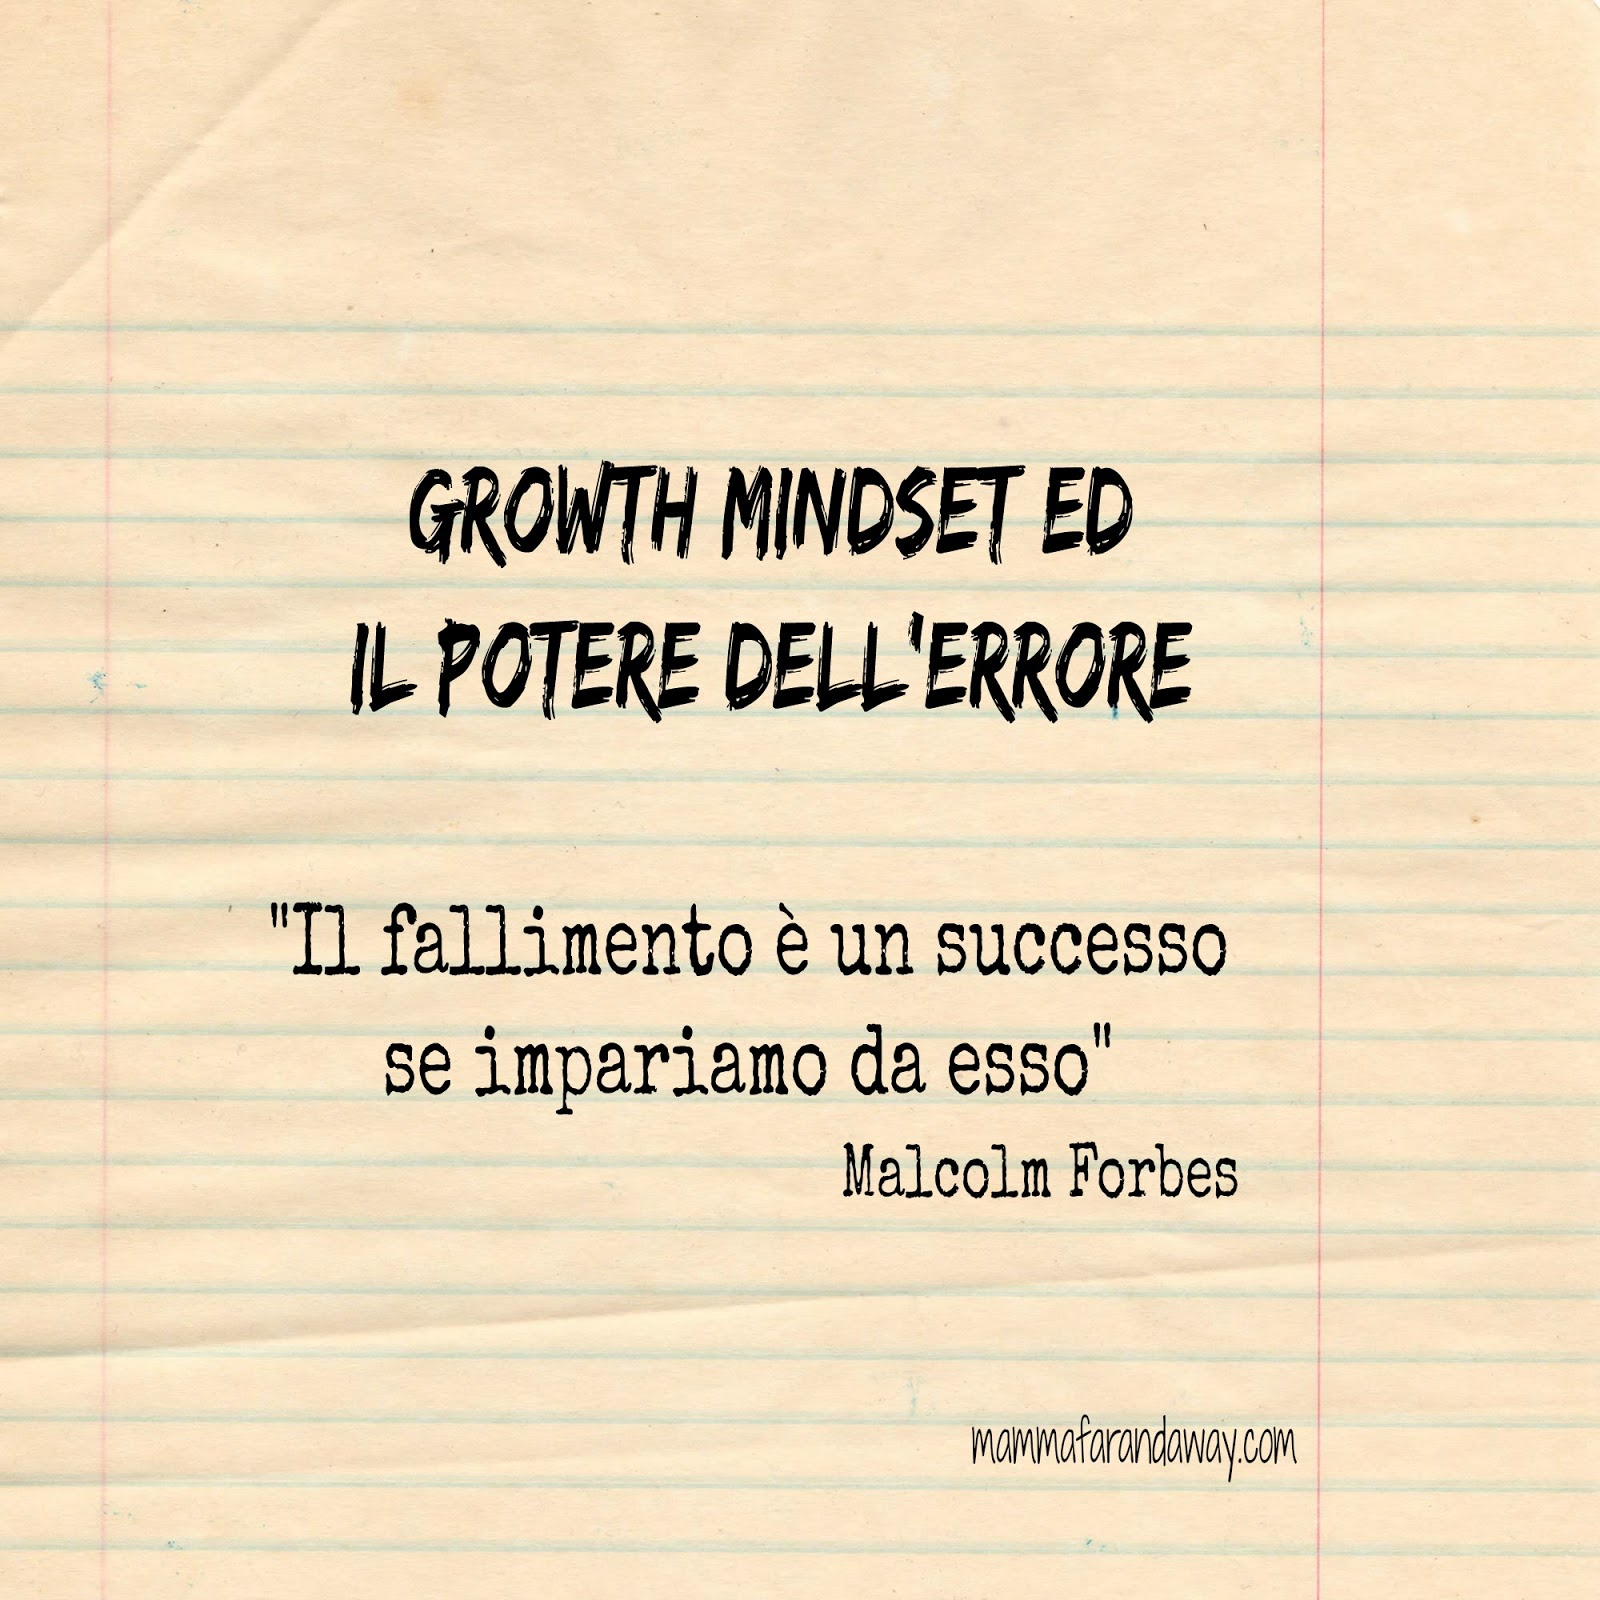 http://www.mammafarandaway.com/search/label/Growth%20Mindset